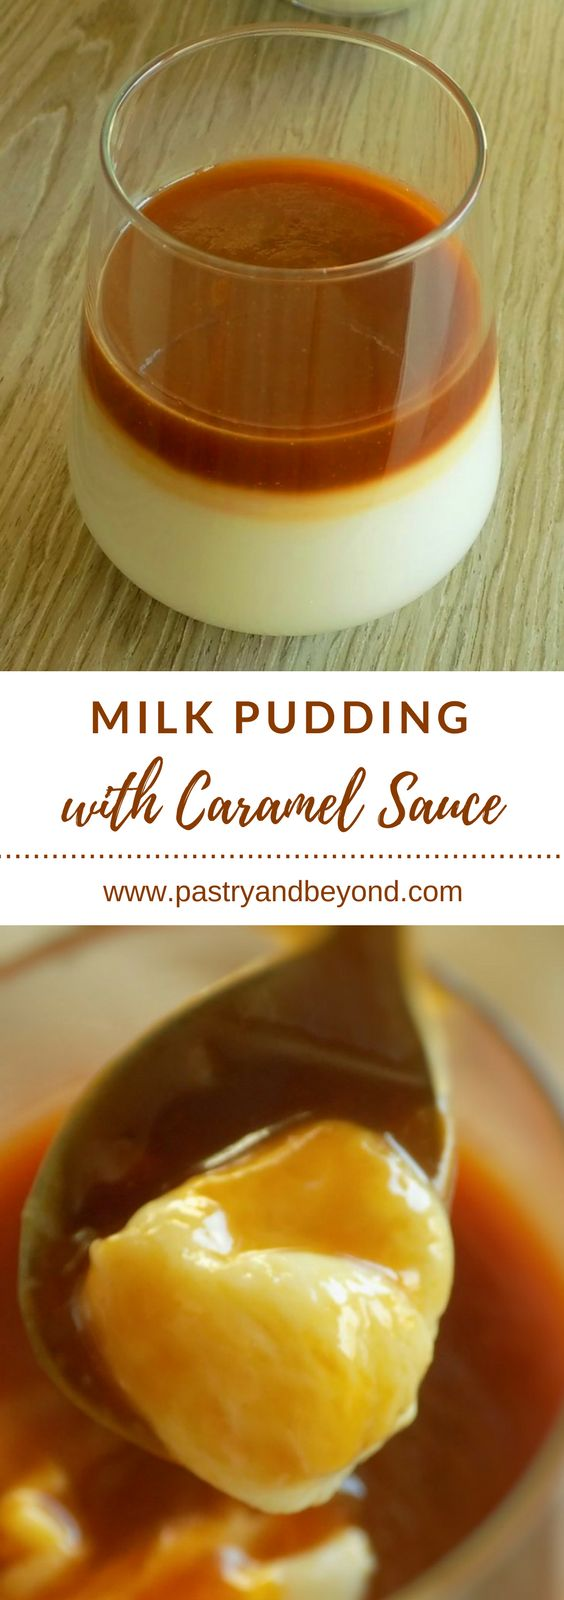 Milk pudding is very rich with my caramel sauce. This tempting dessert is egg free. Once you make it, you will want to make it over again and again.